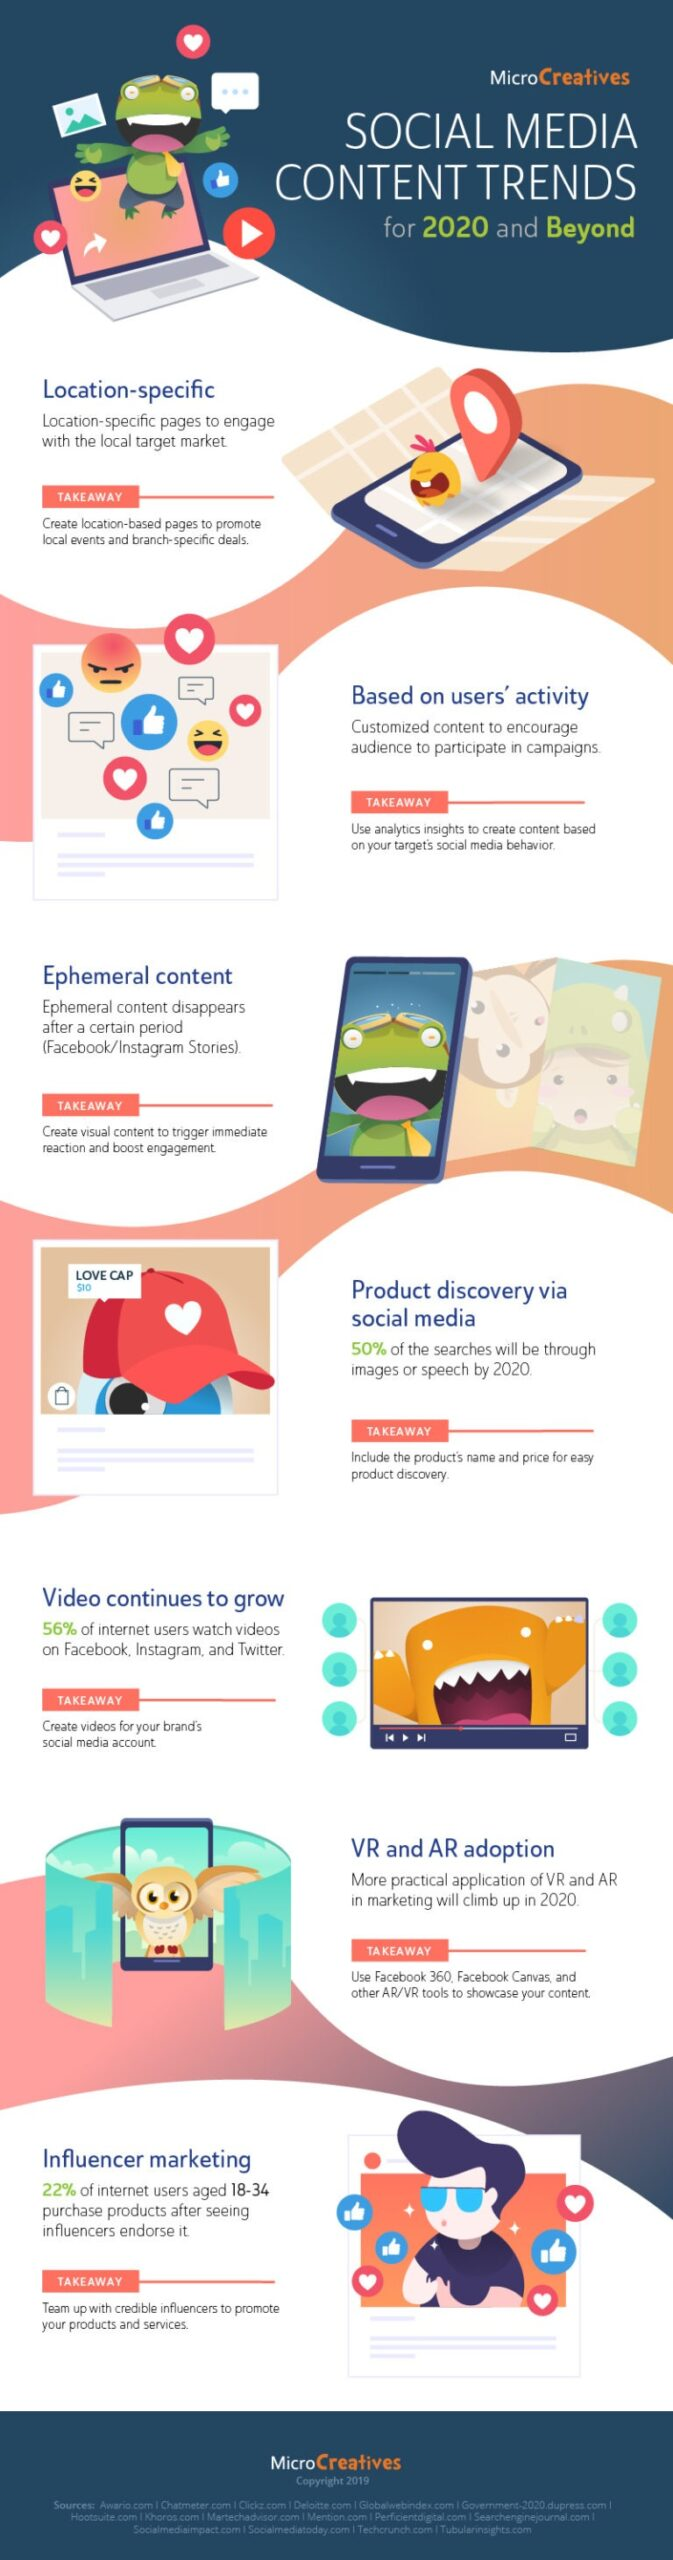 Social Media Content Trends for 2020 and Beyond